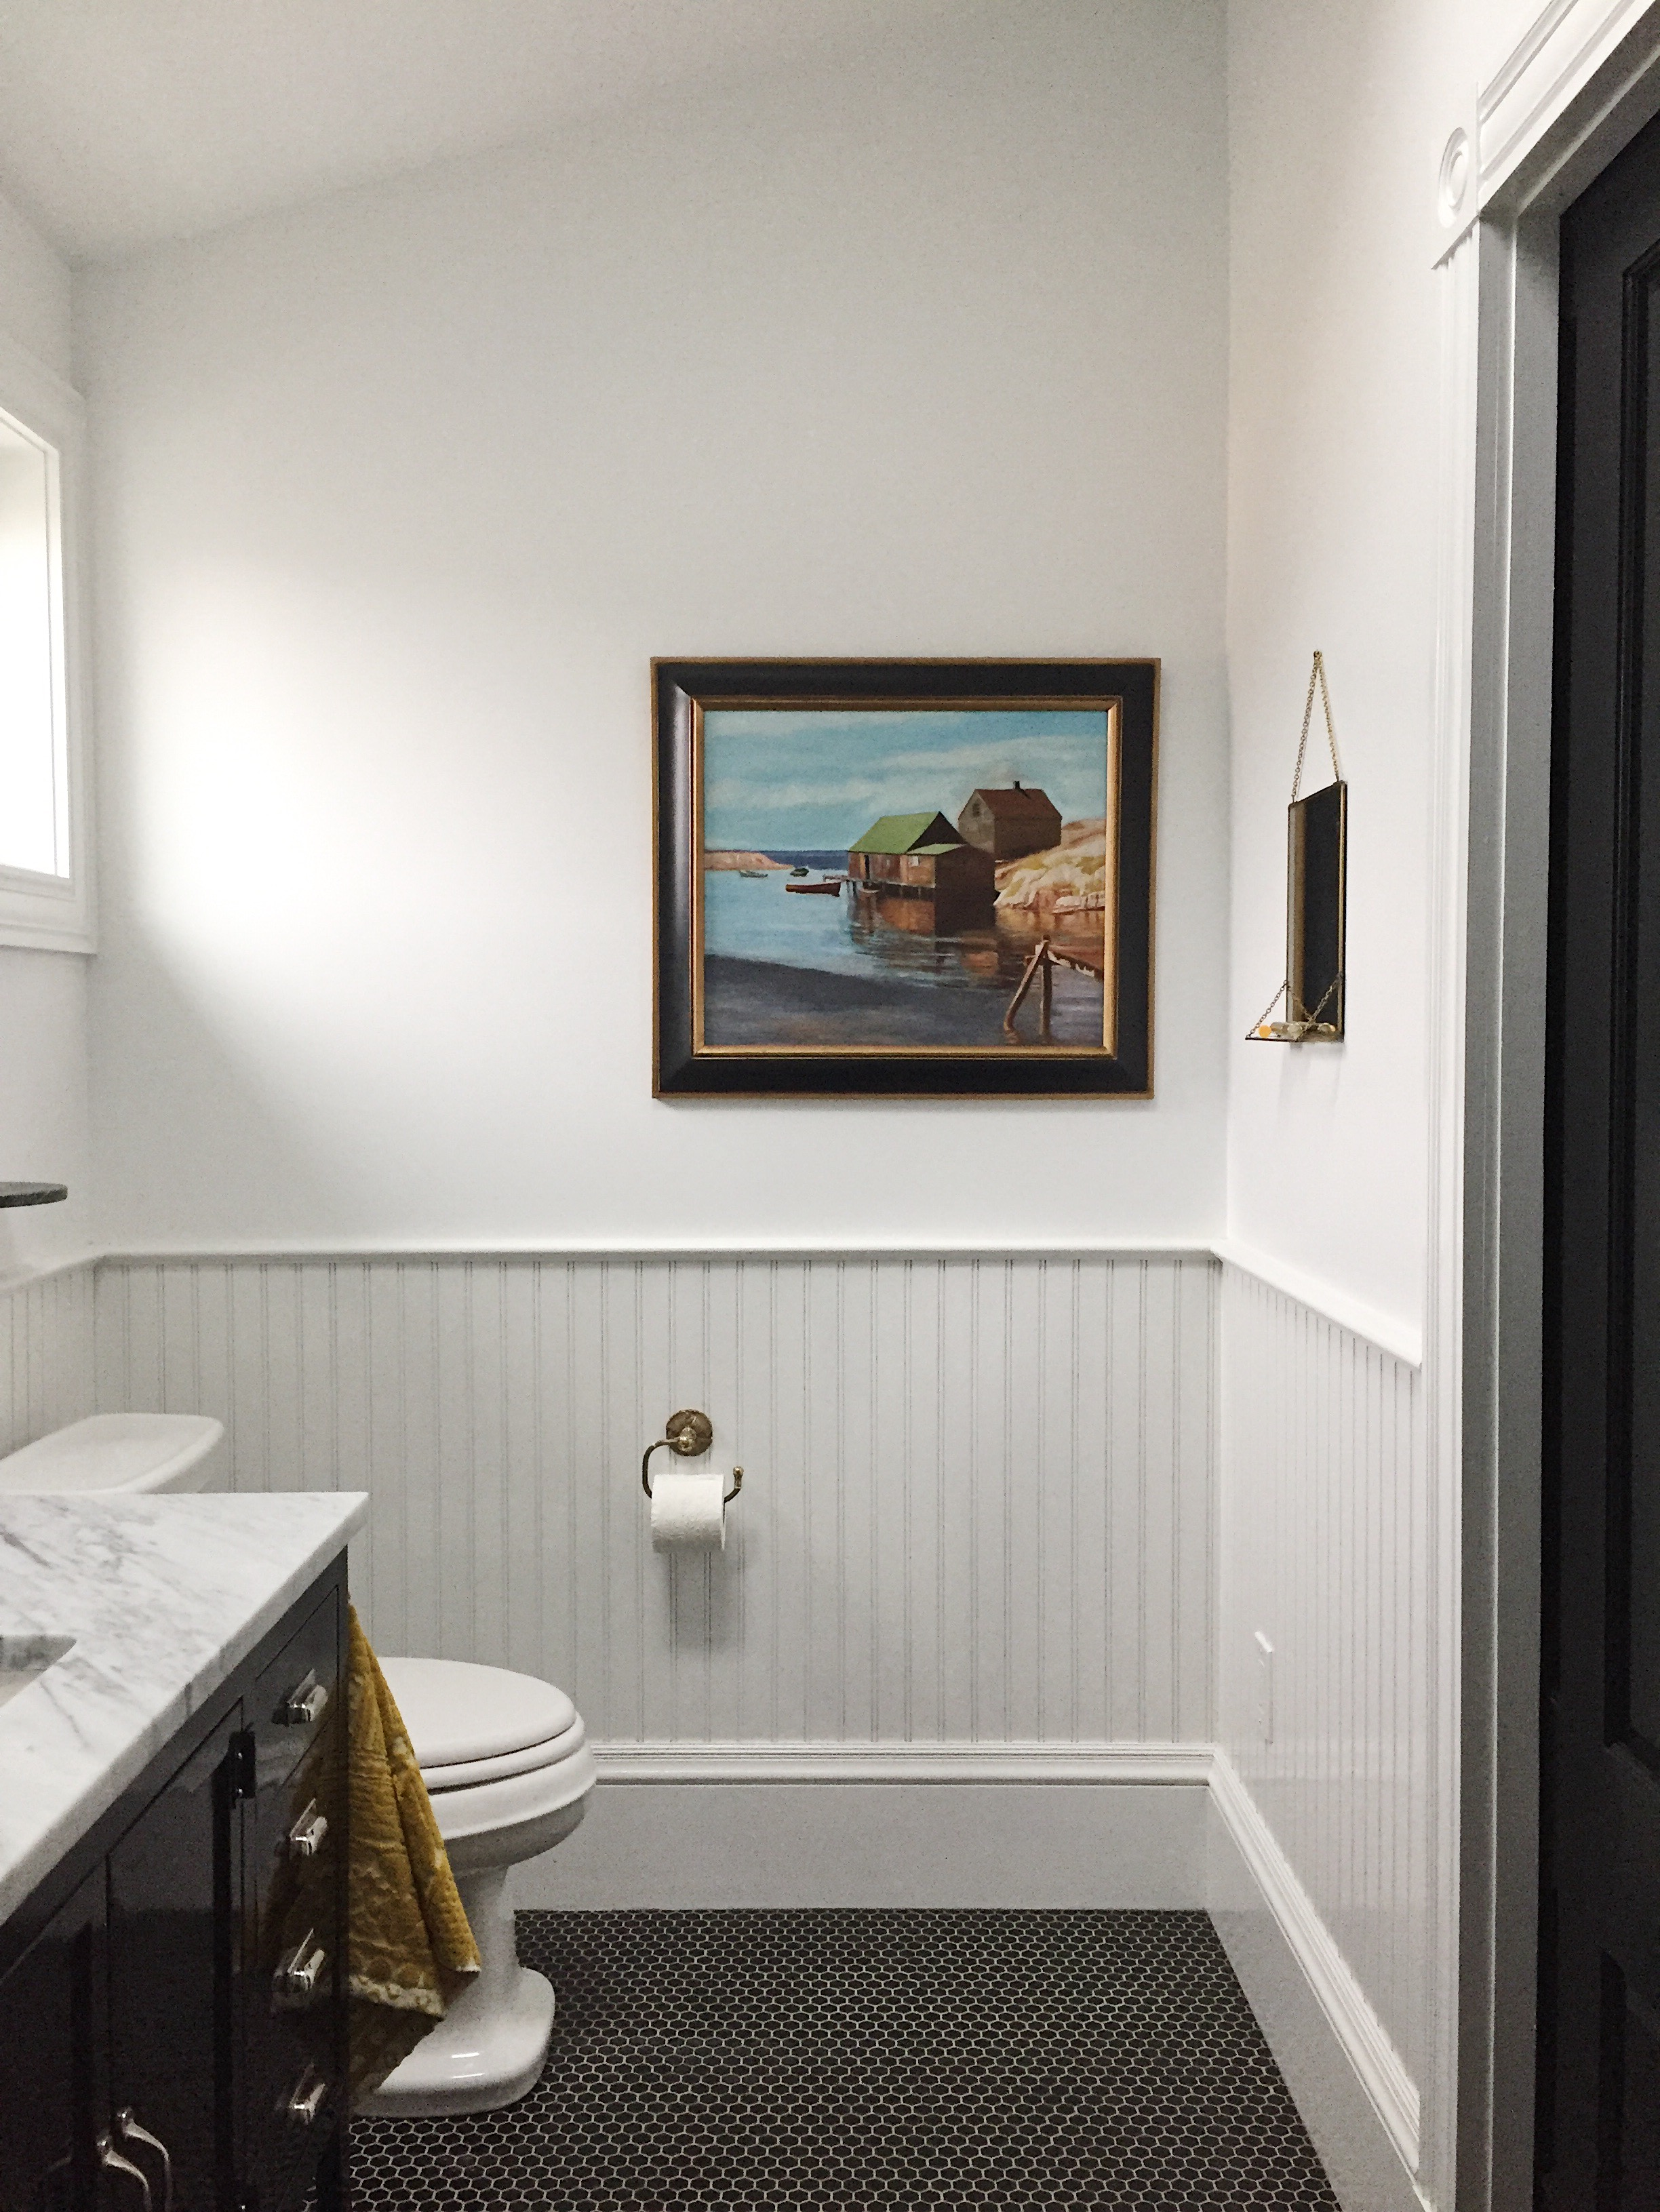 We added a bathroom (life changer!) We used a traditional glossy, black hex tile floor, wood wainscot + white subway tile in the shower.The artwork was painted by my late grandfather.